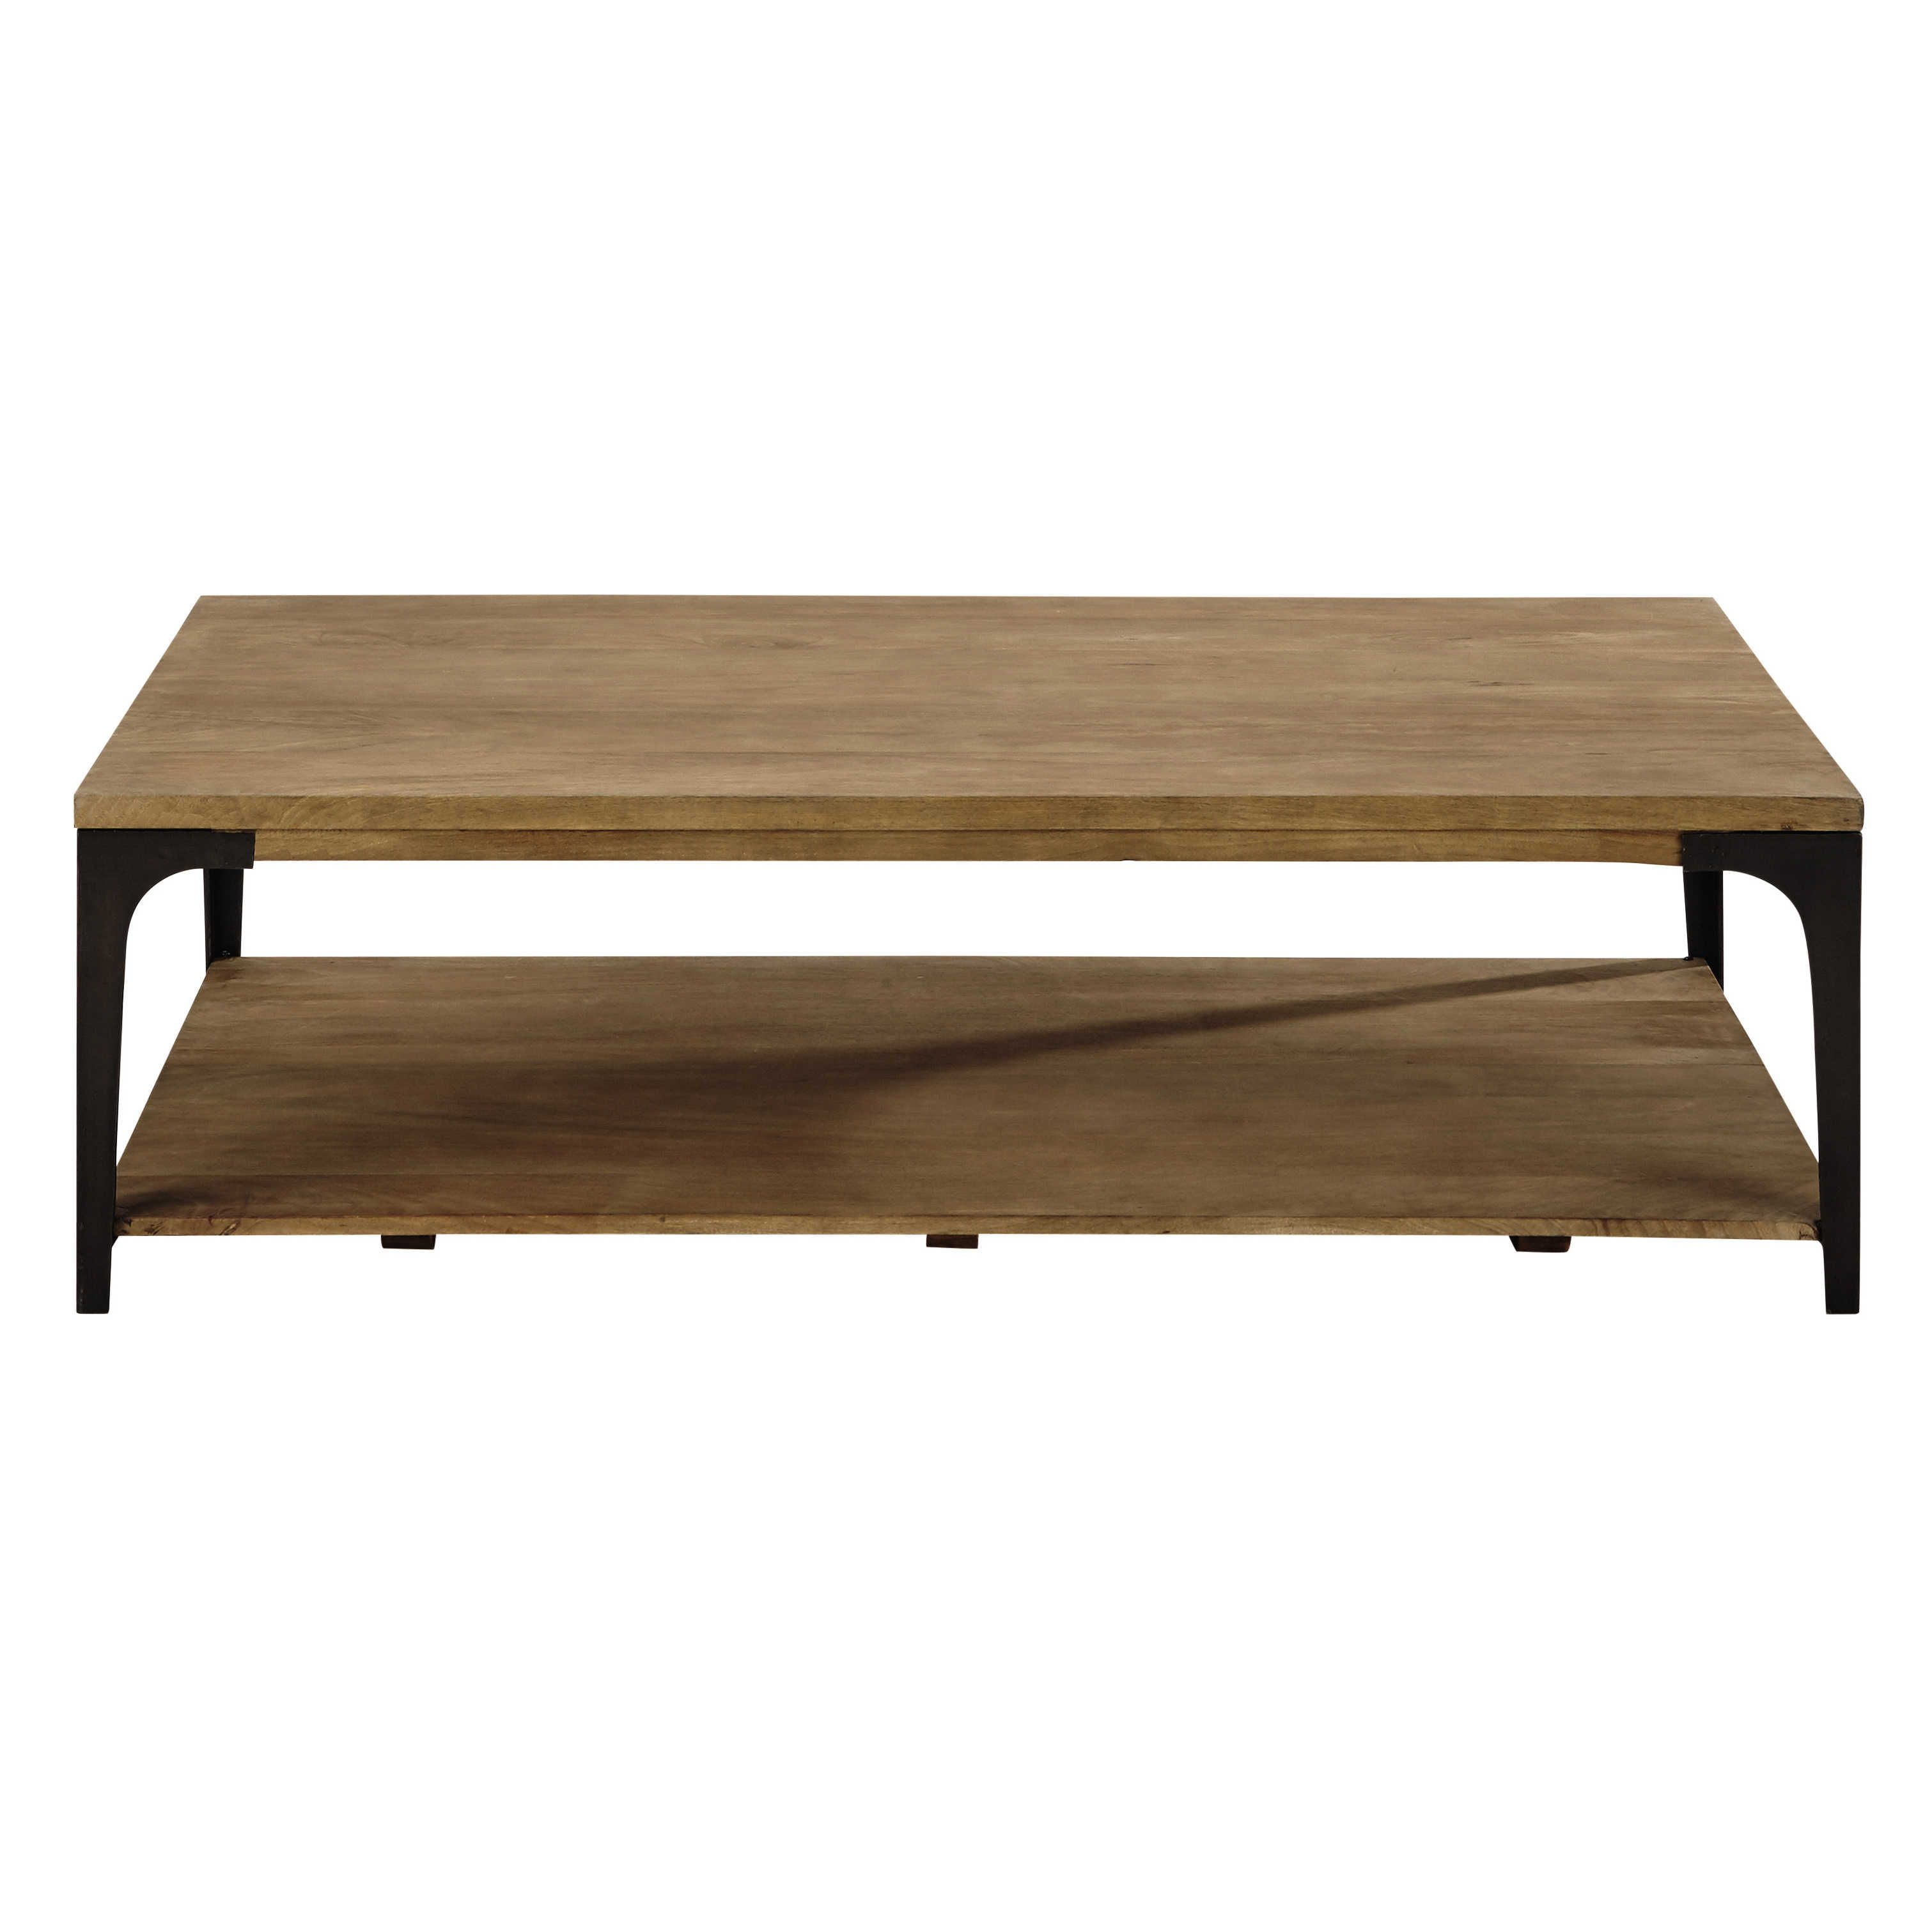 Couchtisch Aus Massivem Mangoholz Und Metall Tv Stand Coffee Table Table Wood Metal [ 3022 x 3022 Pixel ]